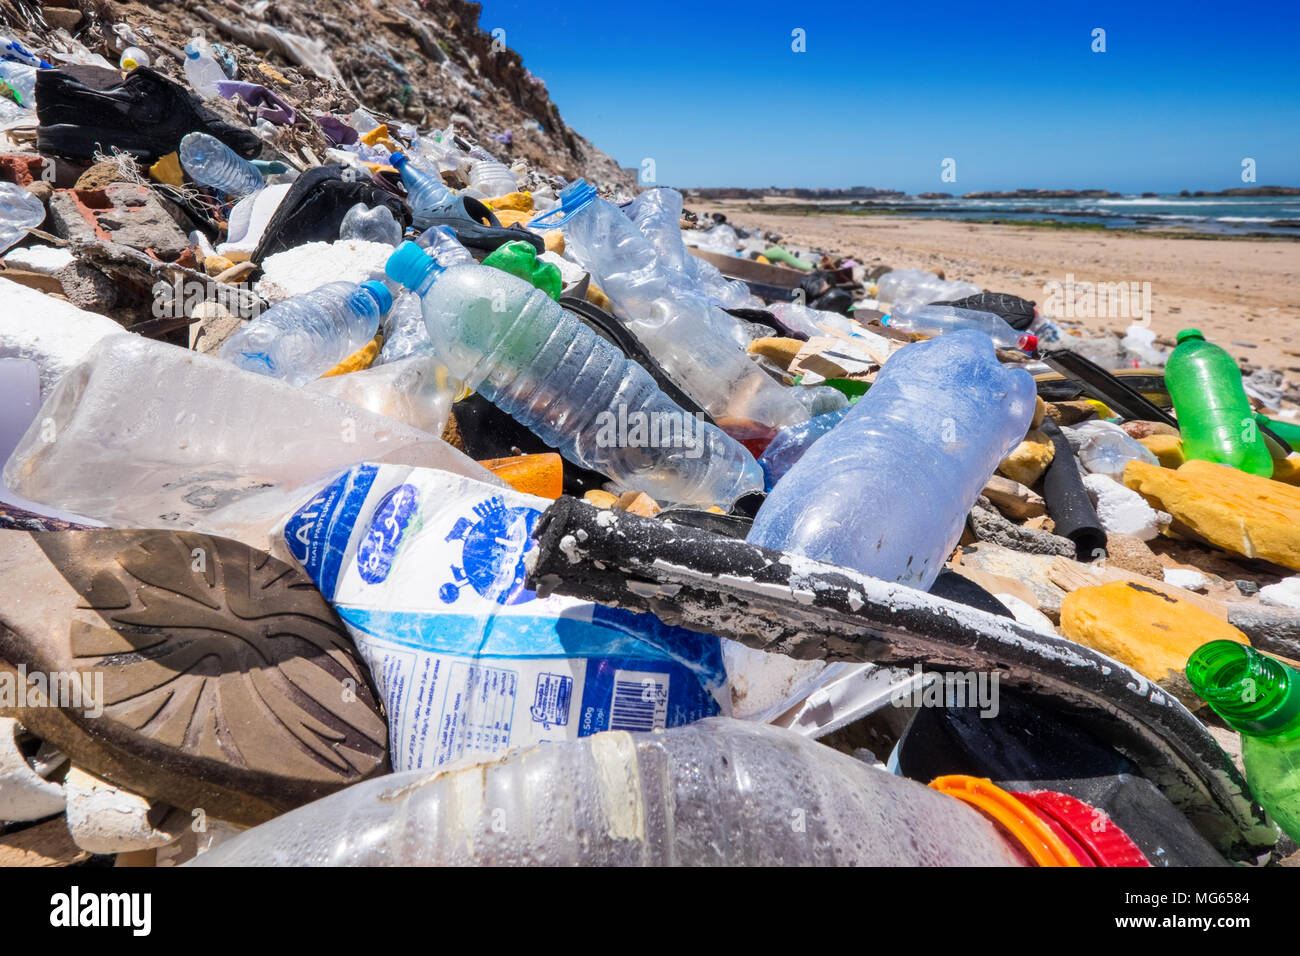 Plastic bottles and other rubbish / pollution on a beach in Morocco with sea in distance Stock Photo